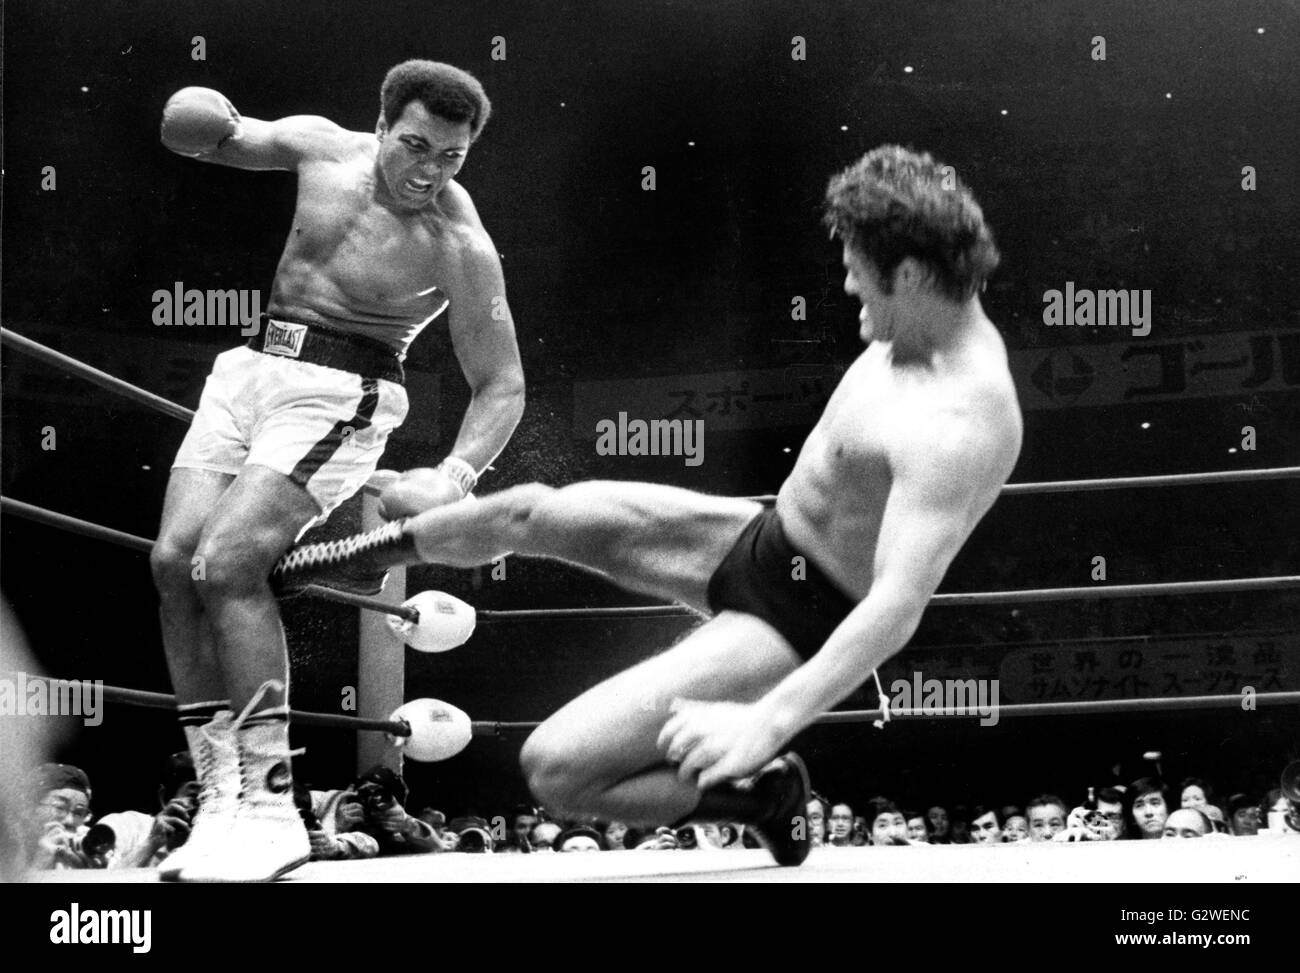 Apr. 11, 1956 - Tokyo, Japan - MUHAMMAD ALI or CASSIUS CLAY, as the dominant heavyweight boxer of the 1960s and Stock Photo